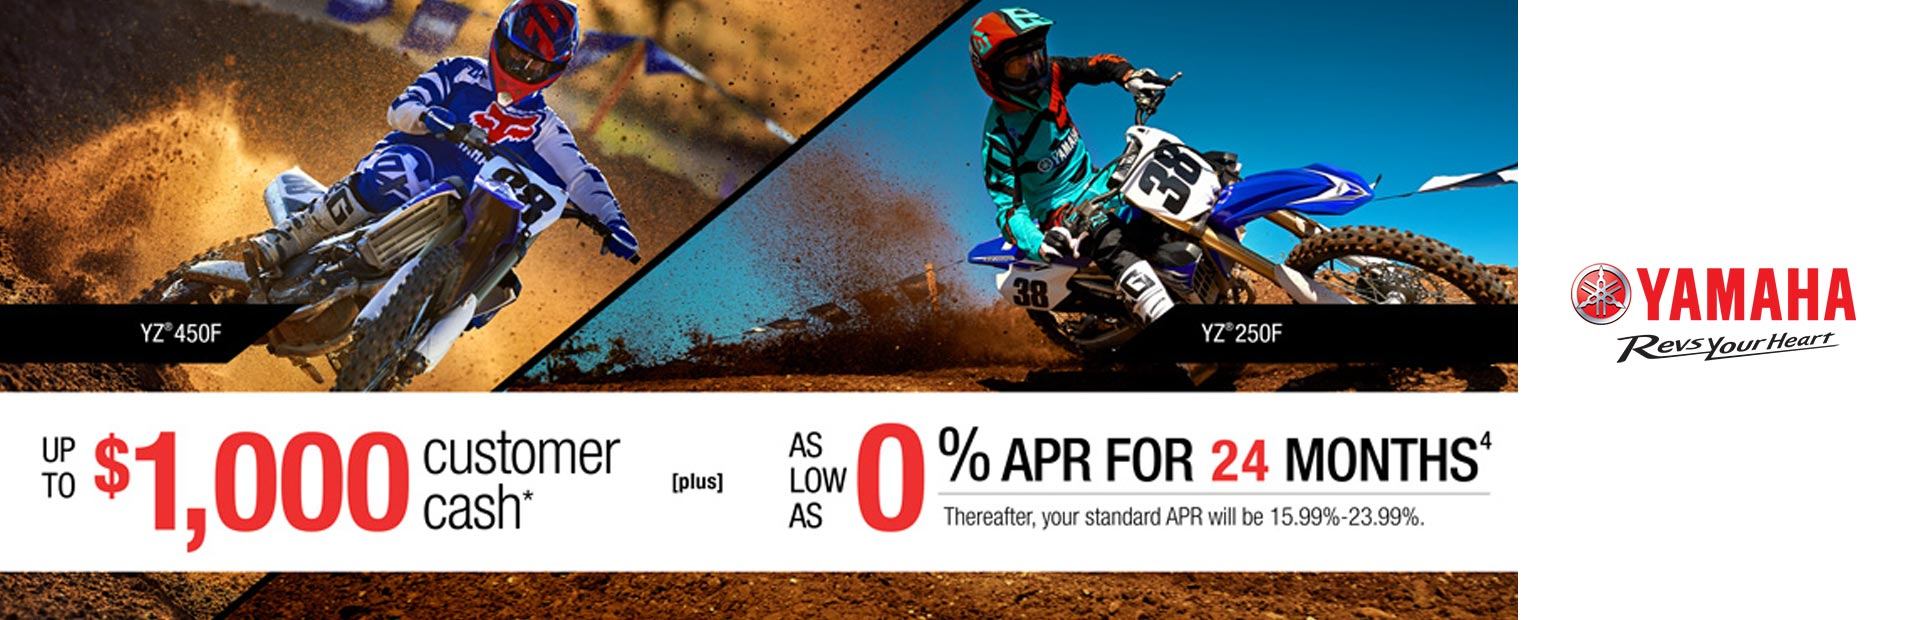 Yamaha: As Low As 0% APR for 24 Months